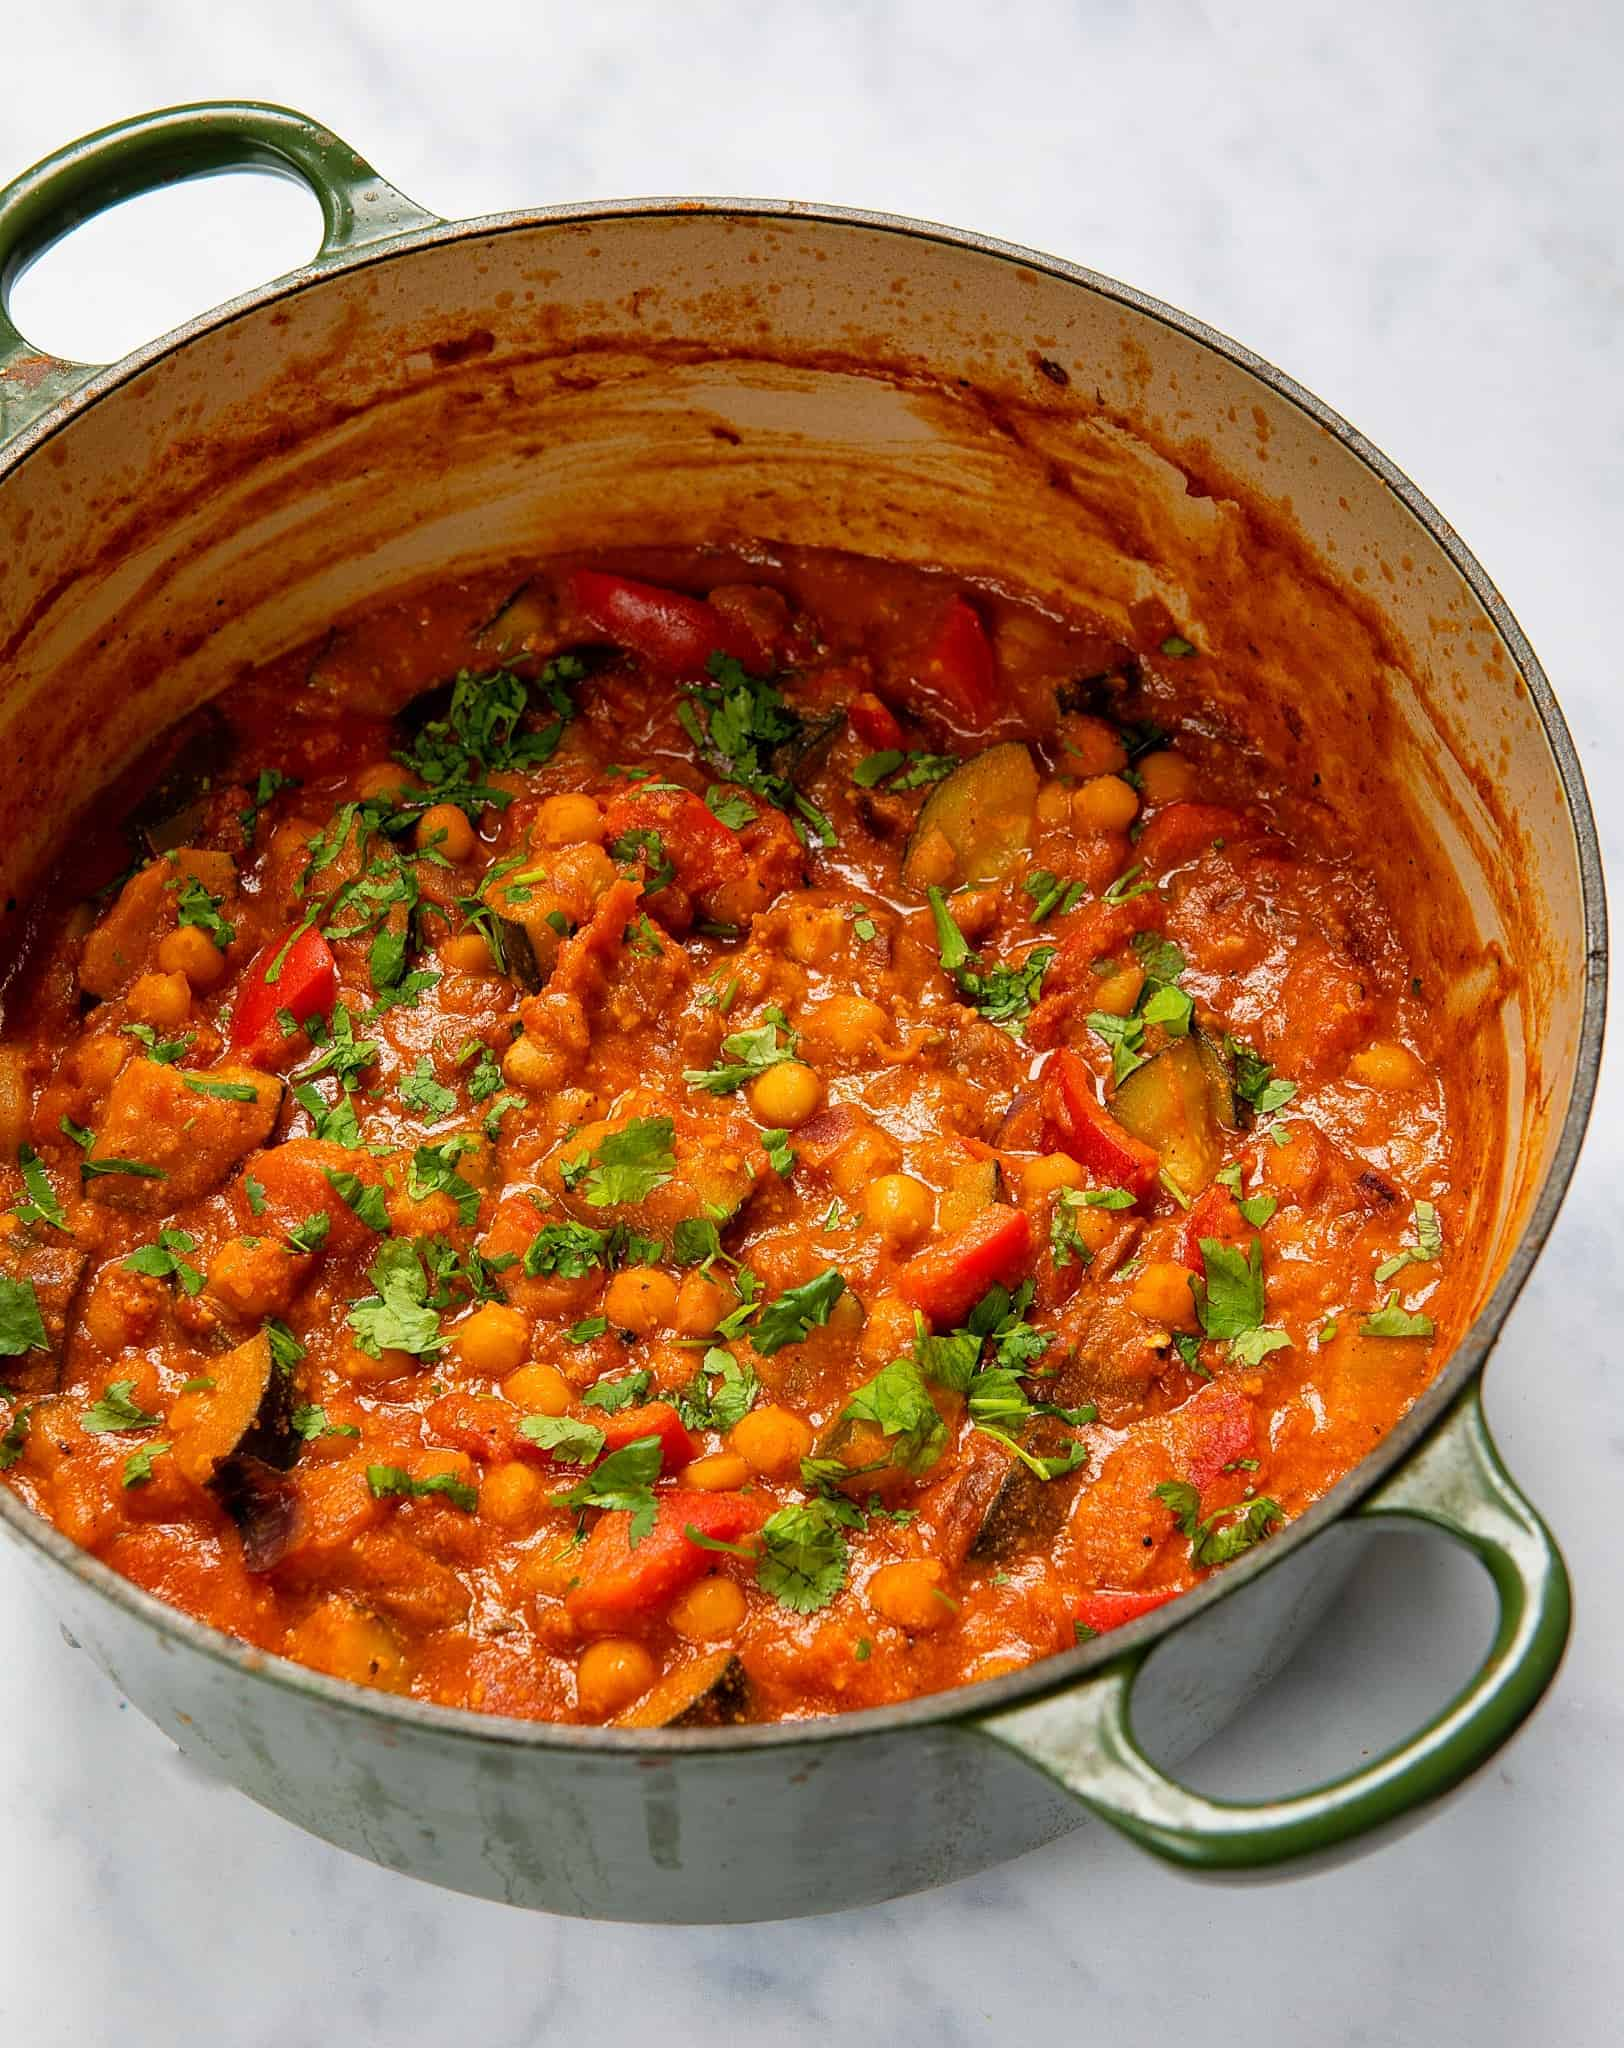 Apricot & Chickpea Tagine - Pot front